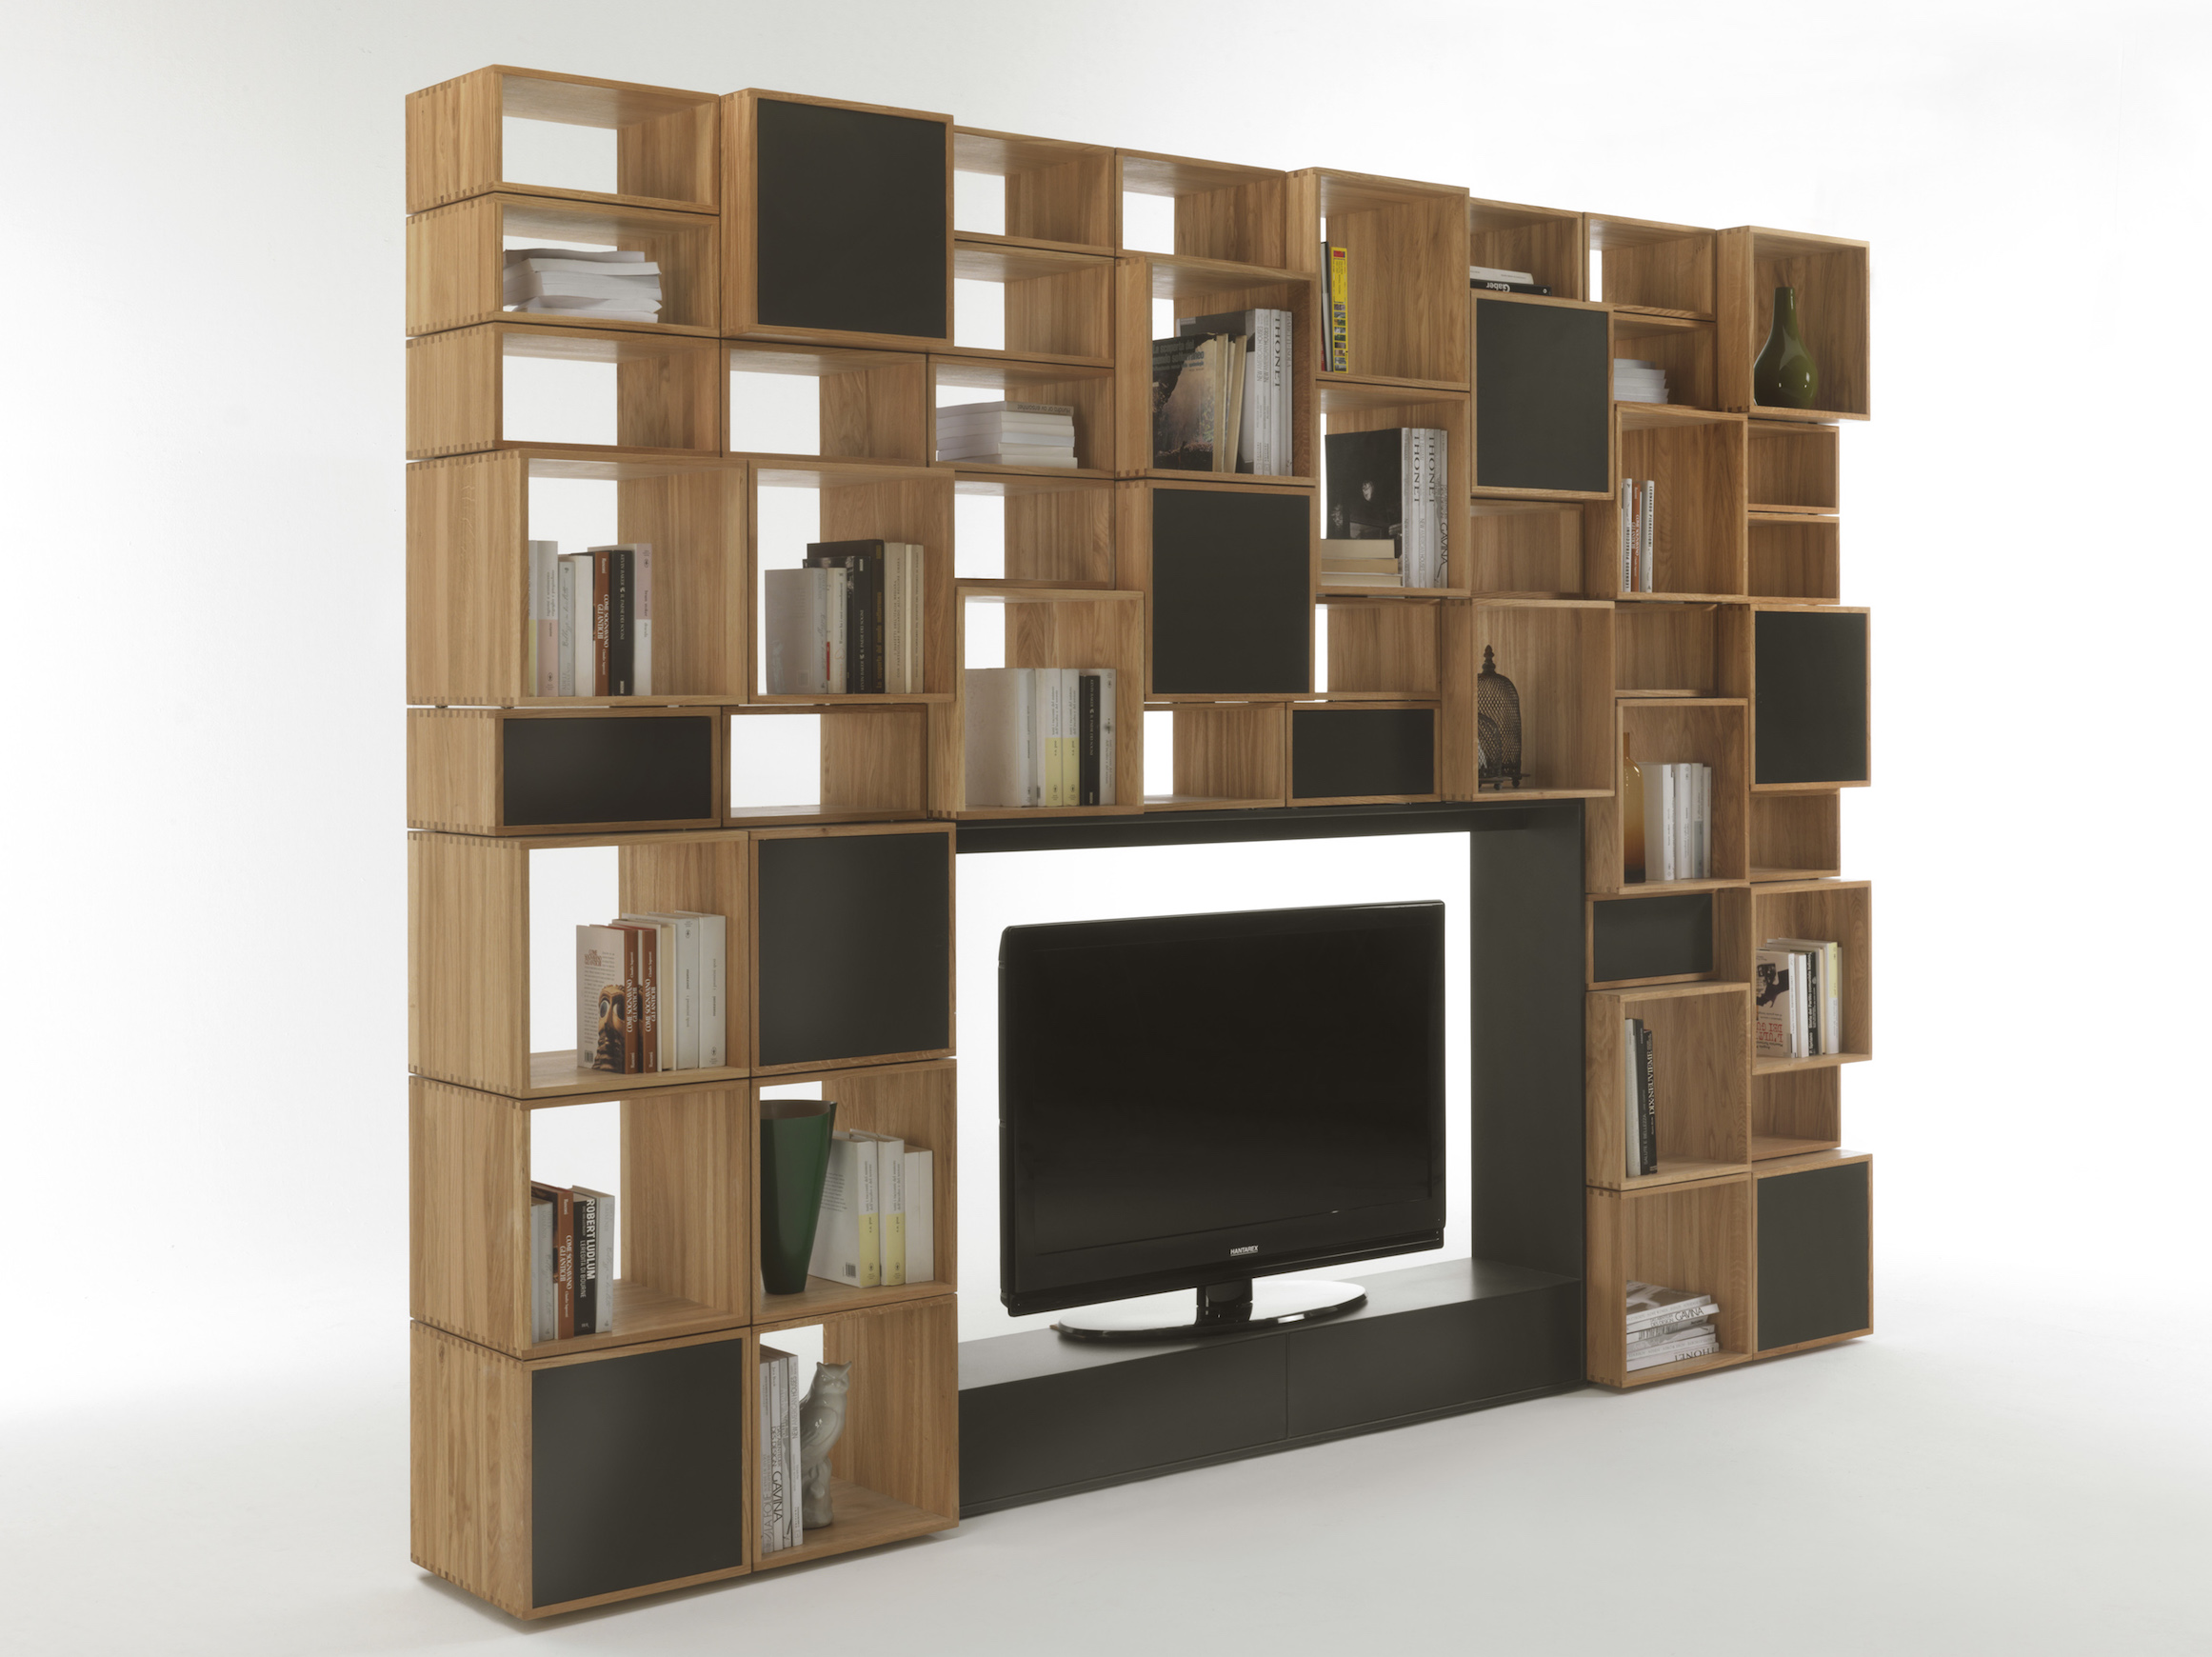 sideboard living bookcases canyonoak tv oak itm canyon room dark bookcase table unit storage furniture